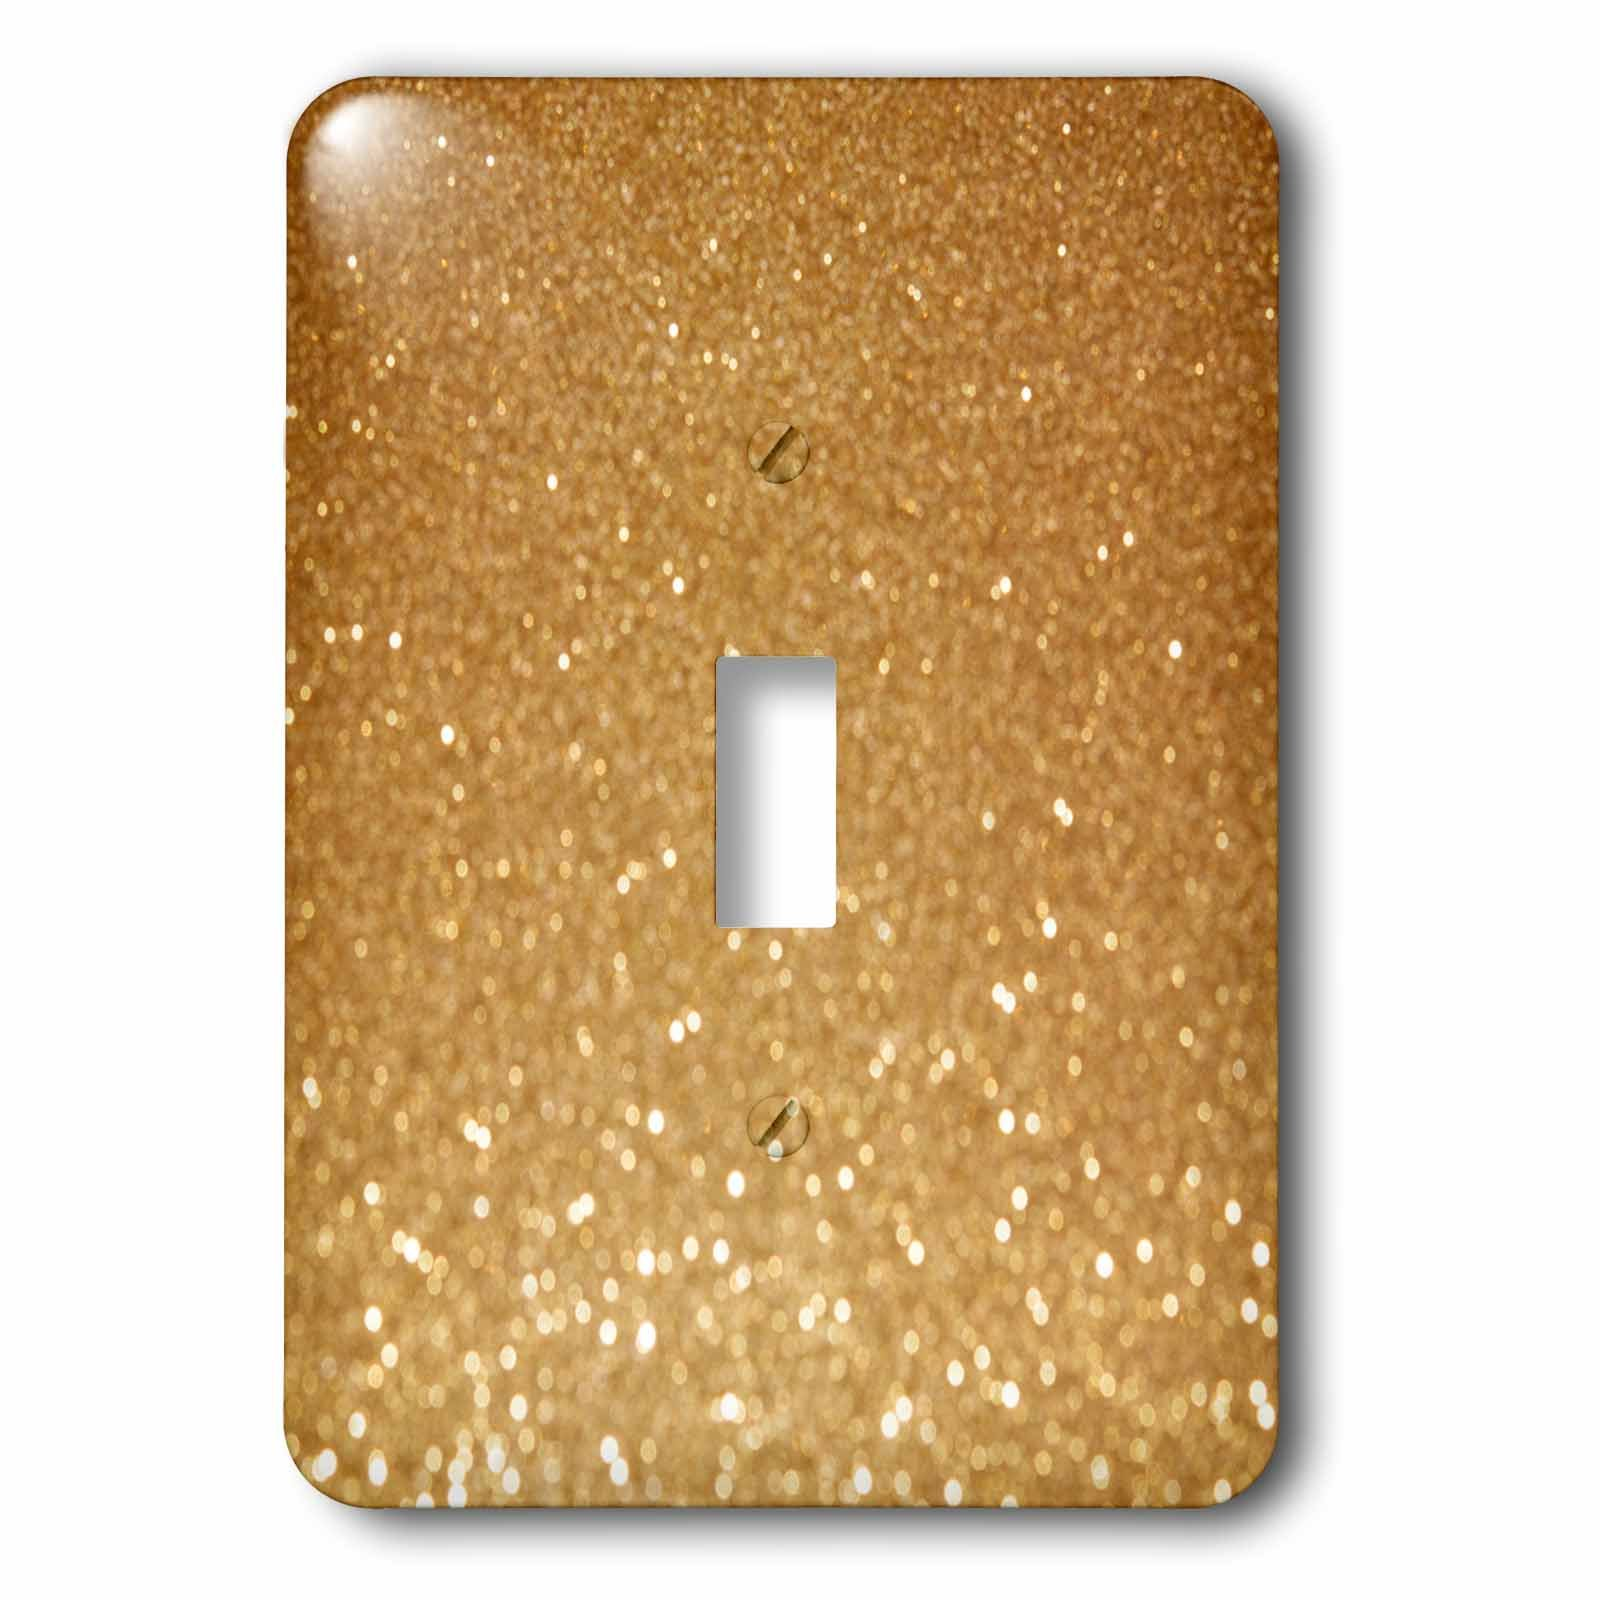 3dRose lsp_266206_1 Golden Glitter Sparkly Glimmer Glamour Shine Luxury Toggle Switch, Mixed